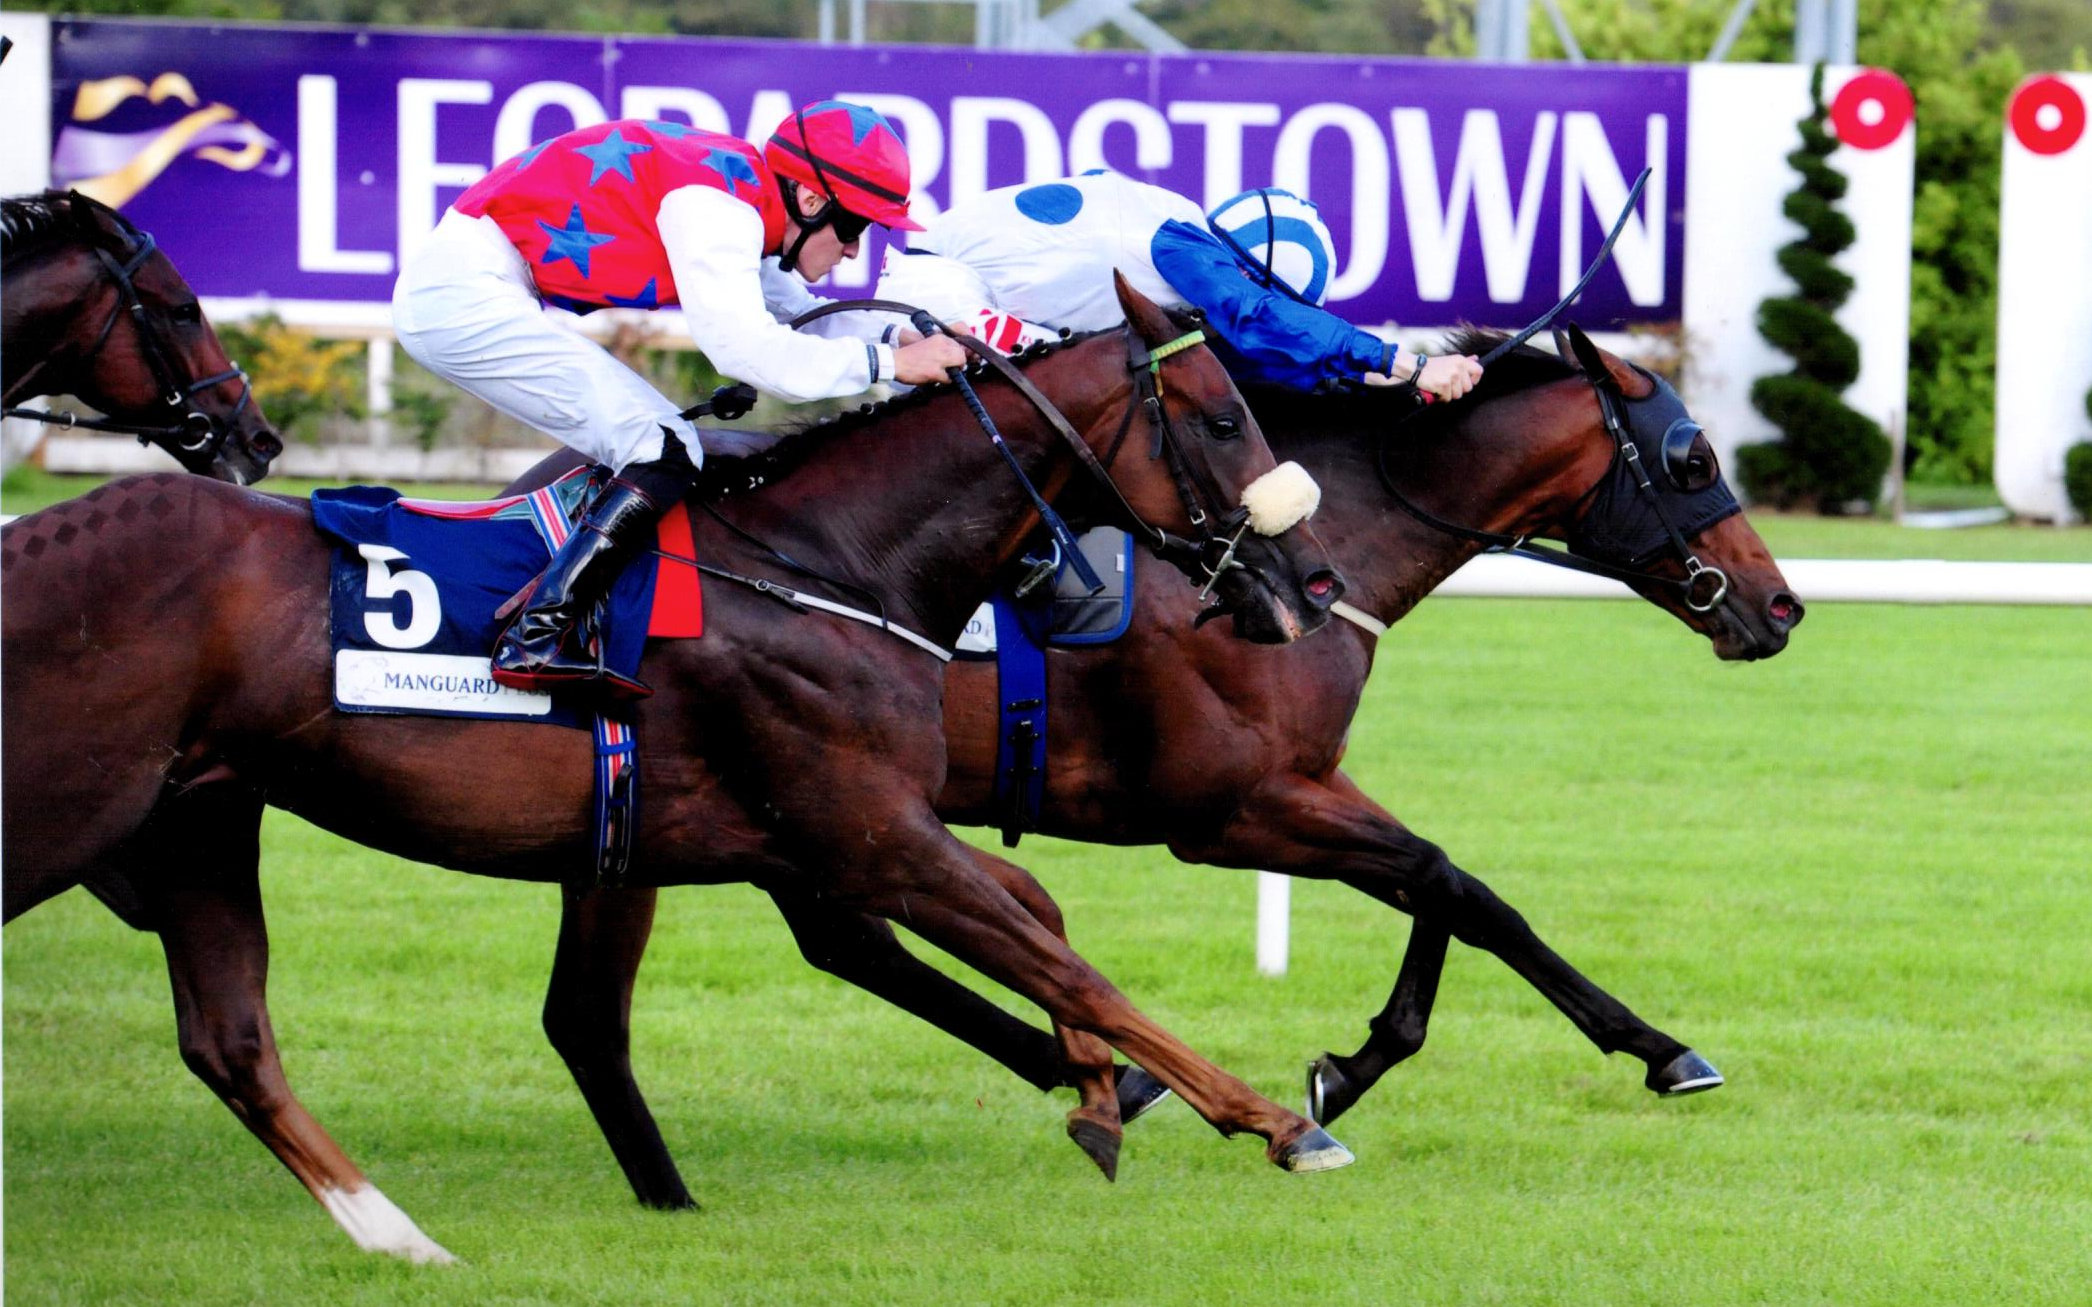 TONY THE GENT clocks up his 5th career win for Séan Jones at Leopardstown, 15th August 2019